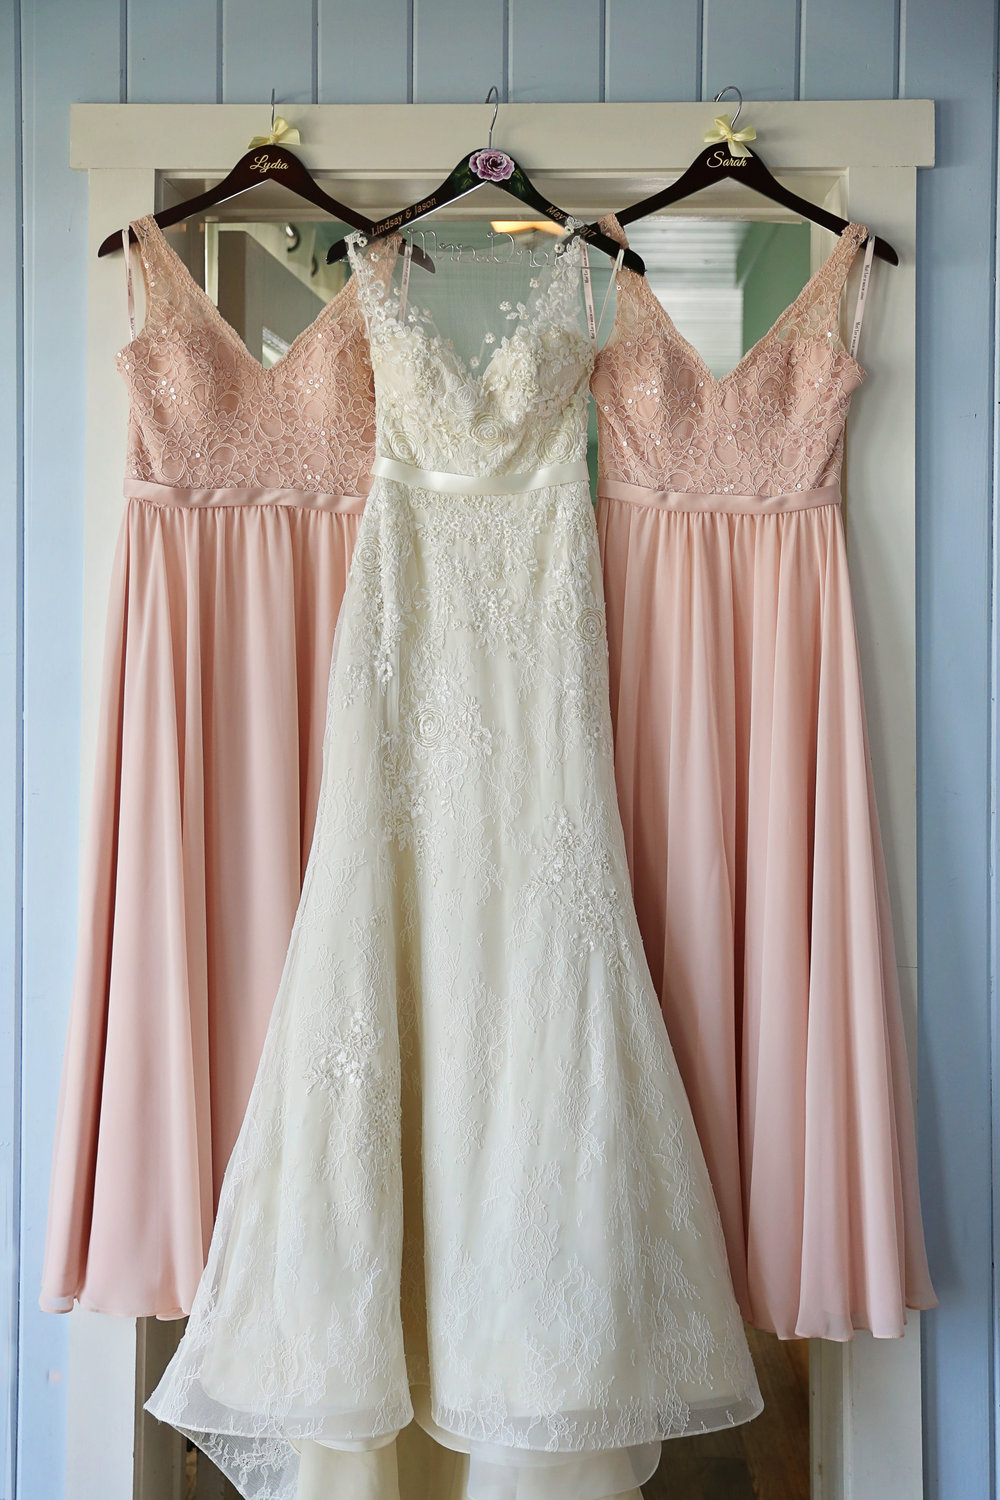 Shell Pink bridesmaids dresses accented the brides lace appliqué embroidered, illusion neckline gown.